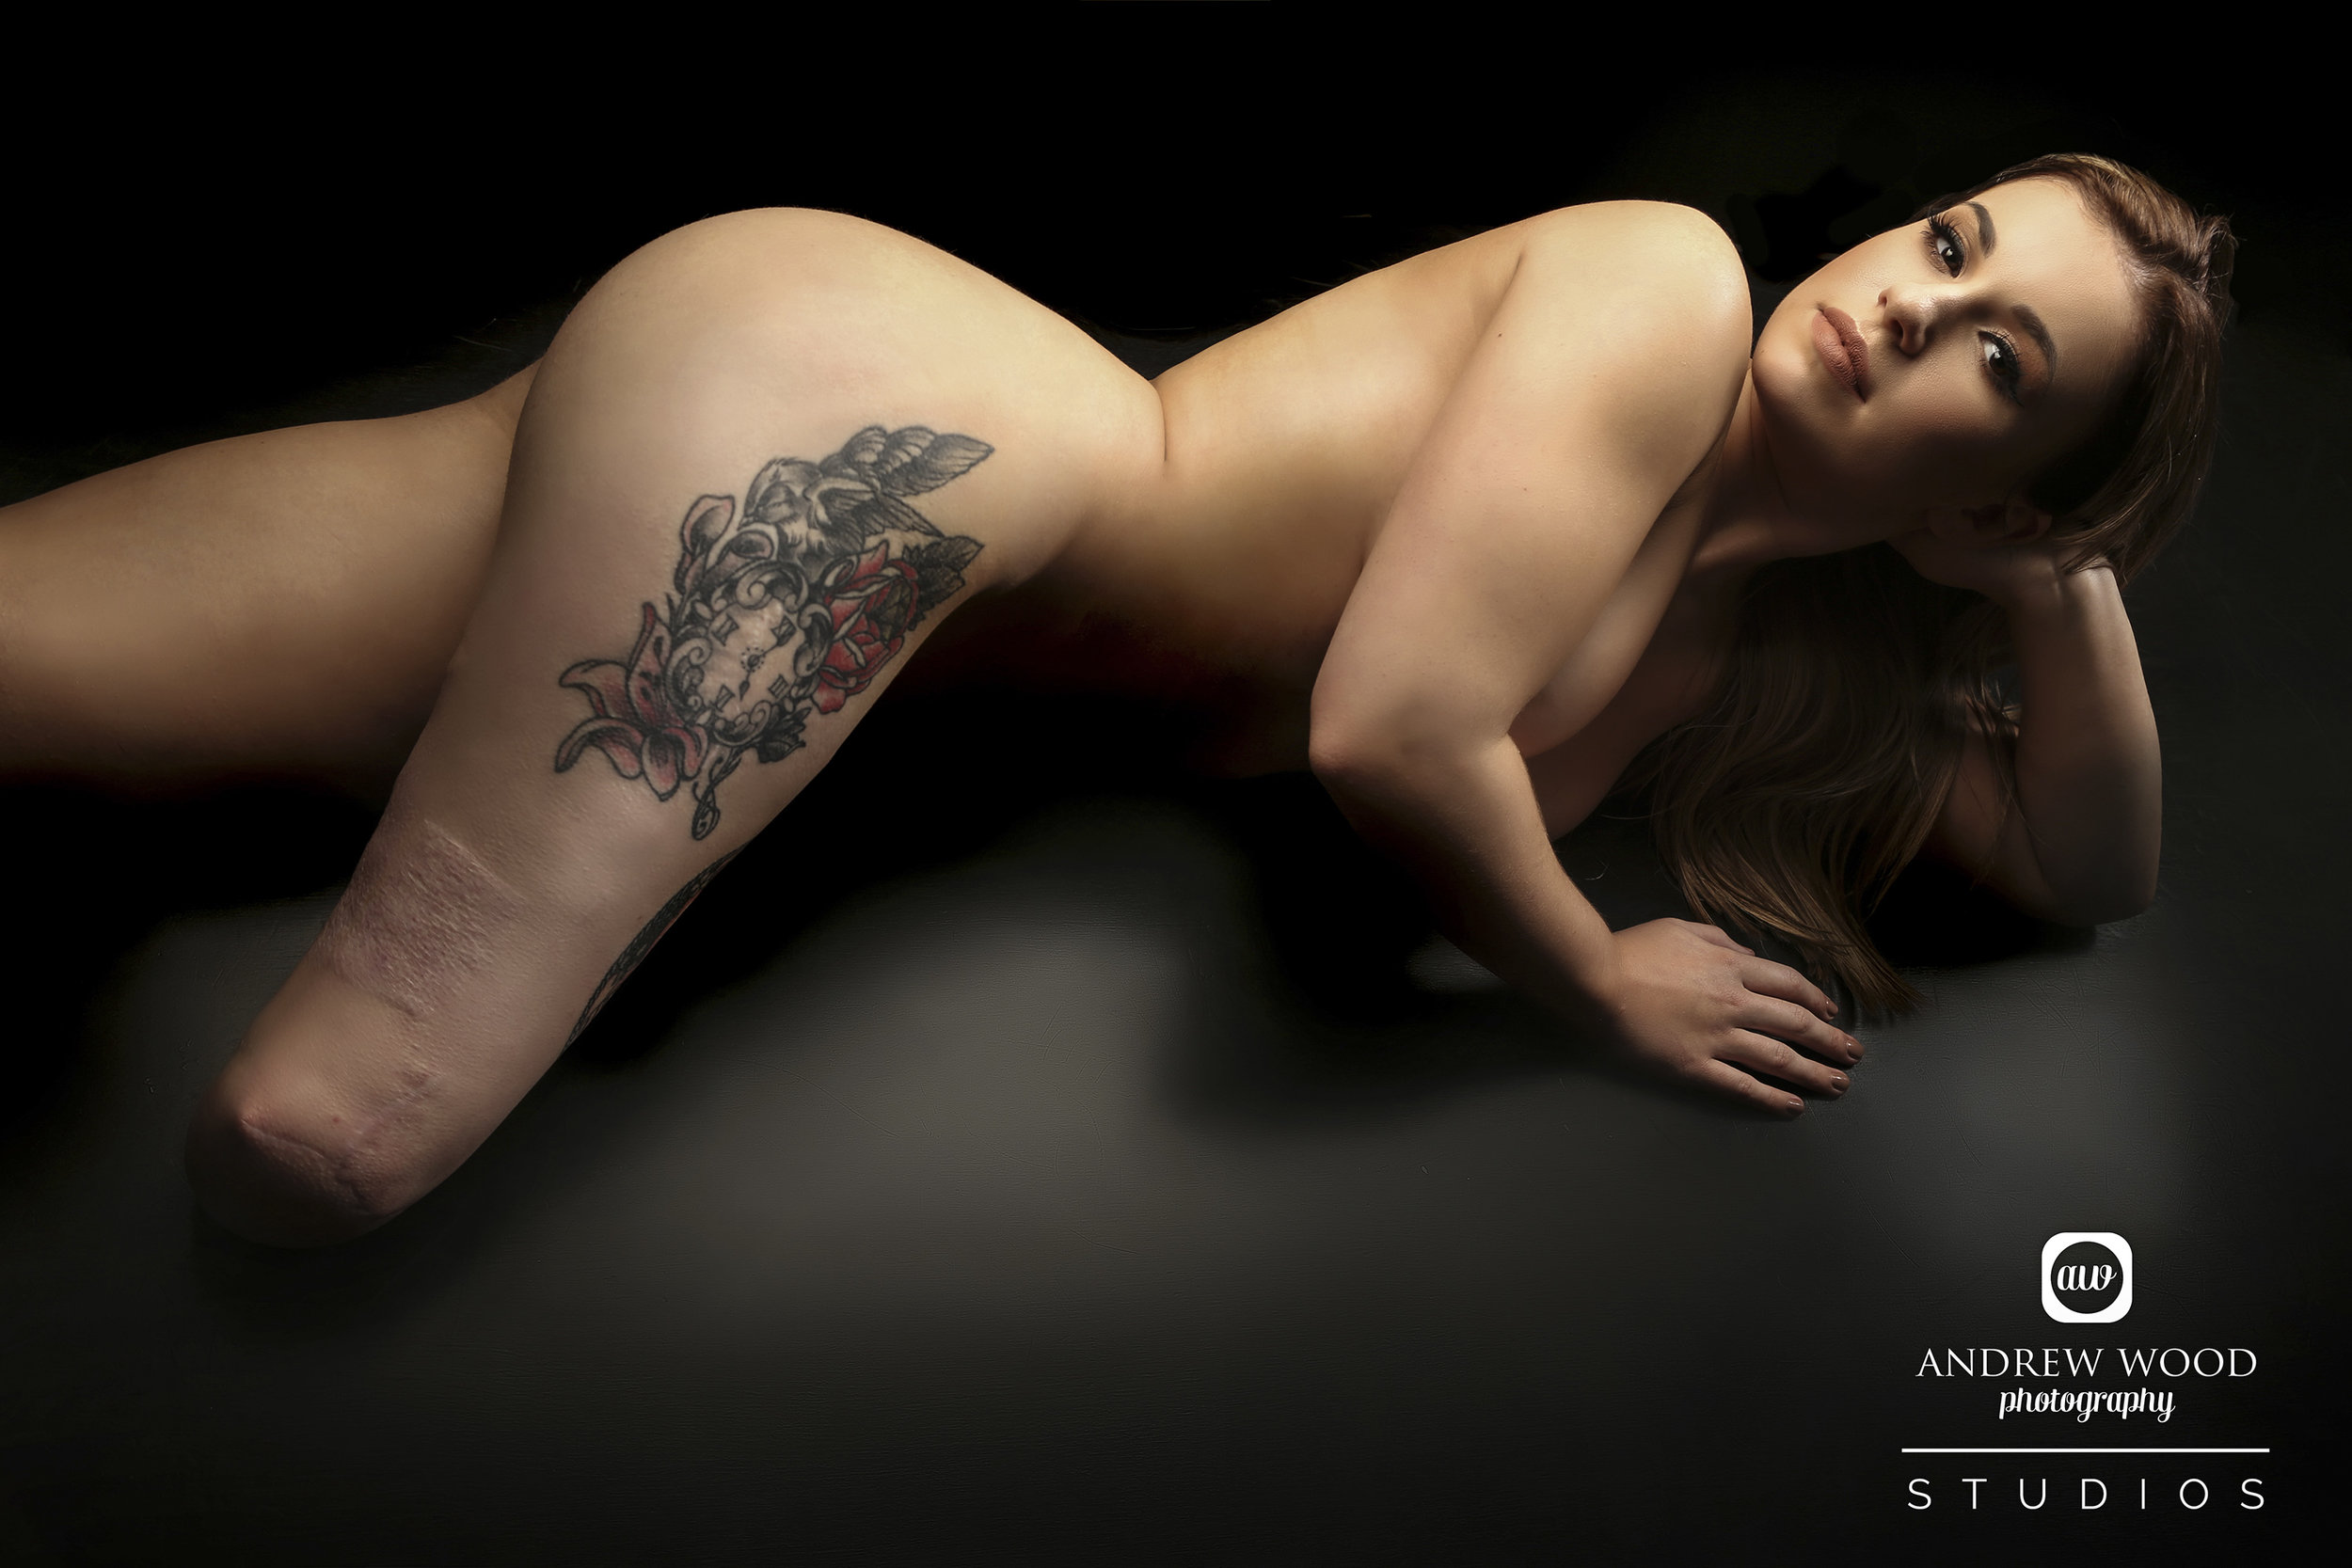 vicky balch alton towers nude shoot Andrew wood photography studios